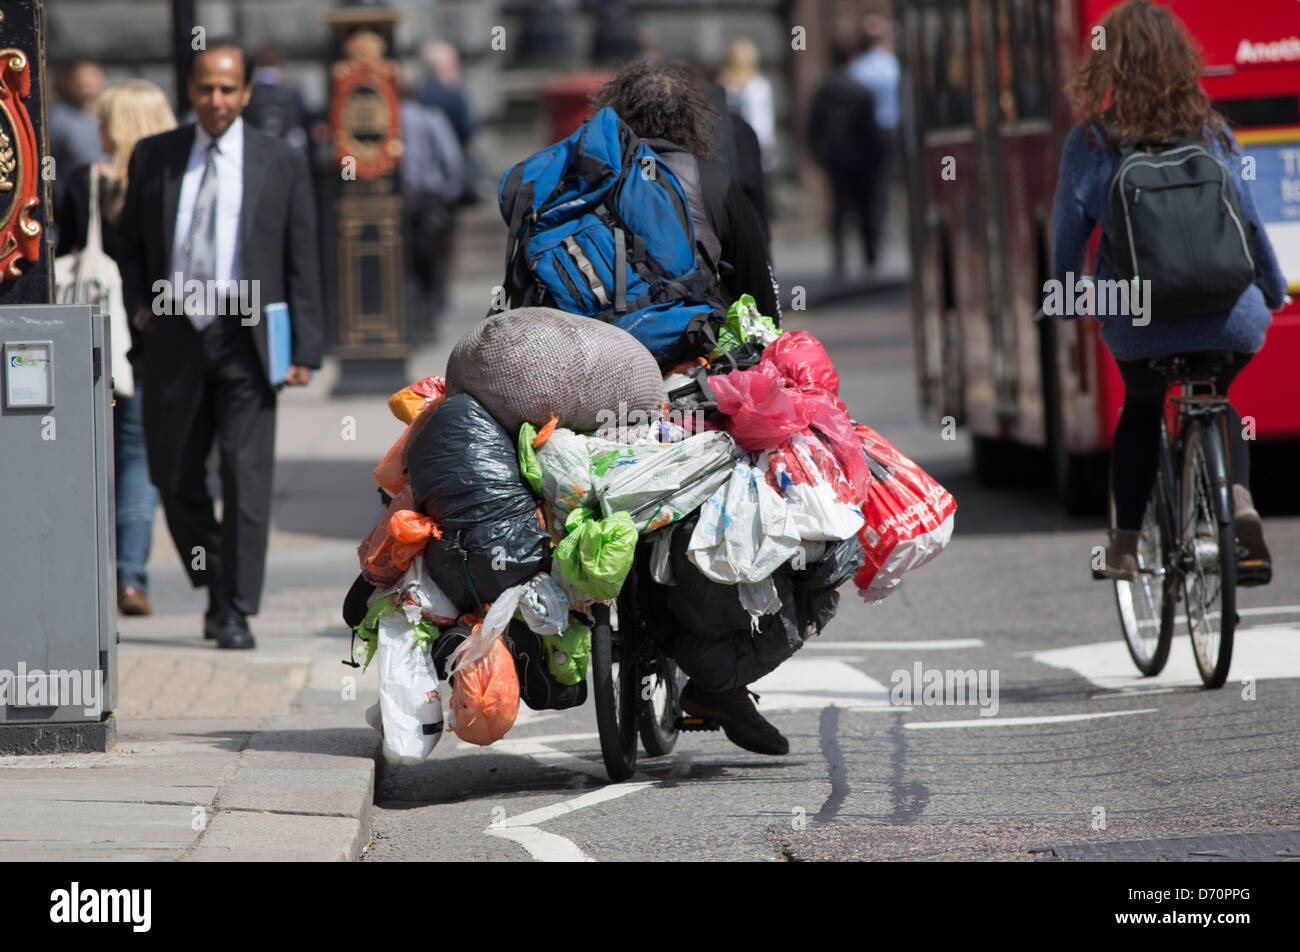 Tramp bag man bagman cycling through london weighed down with carrier bags - Stock Image